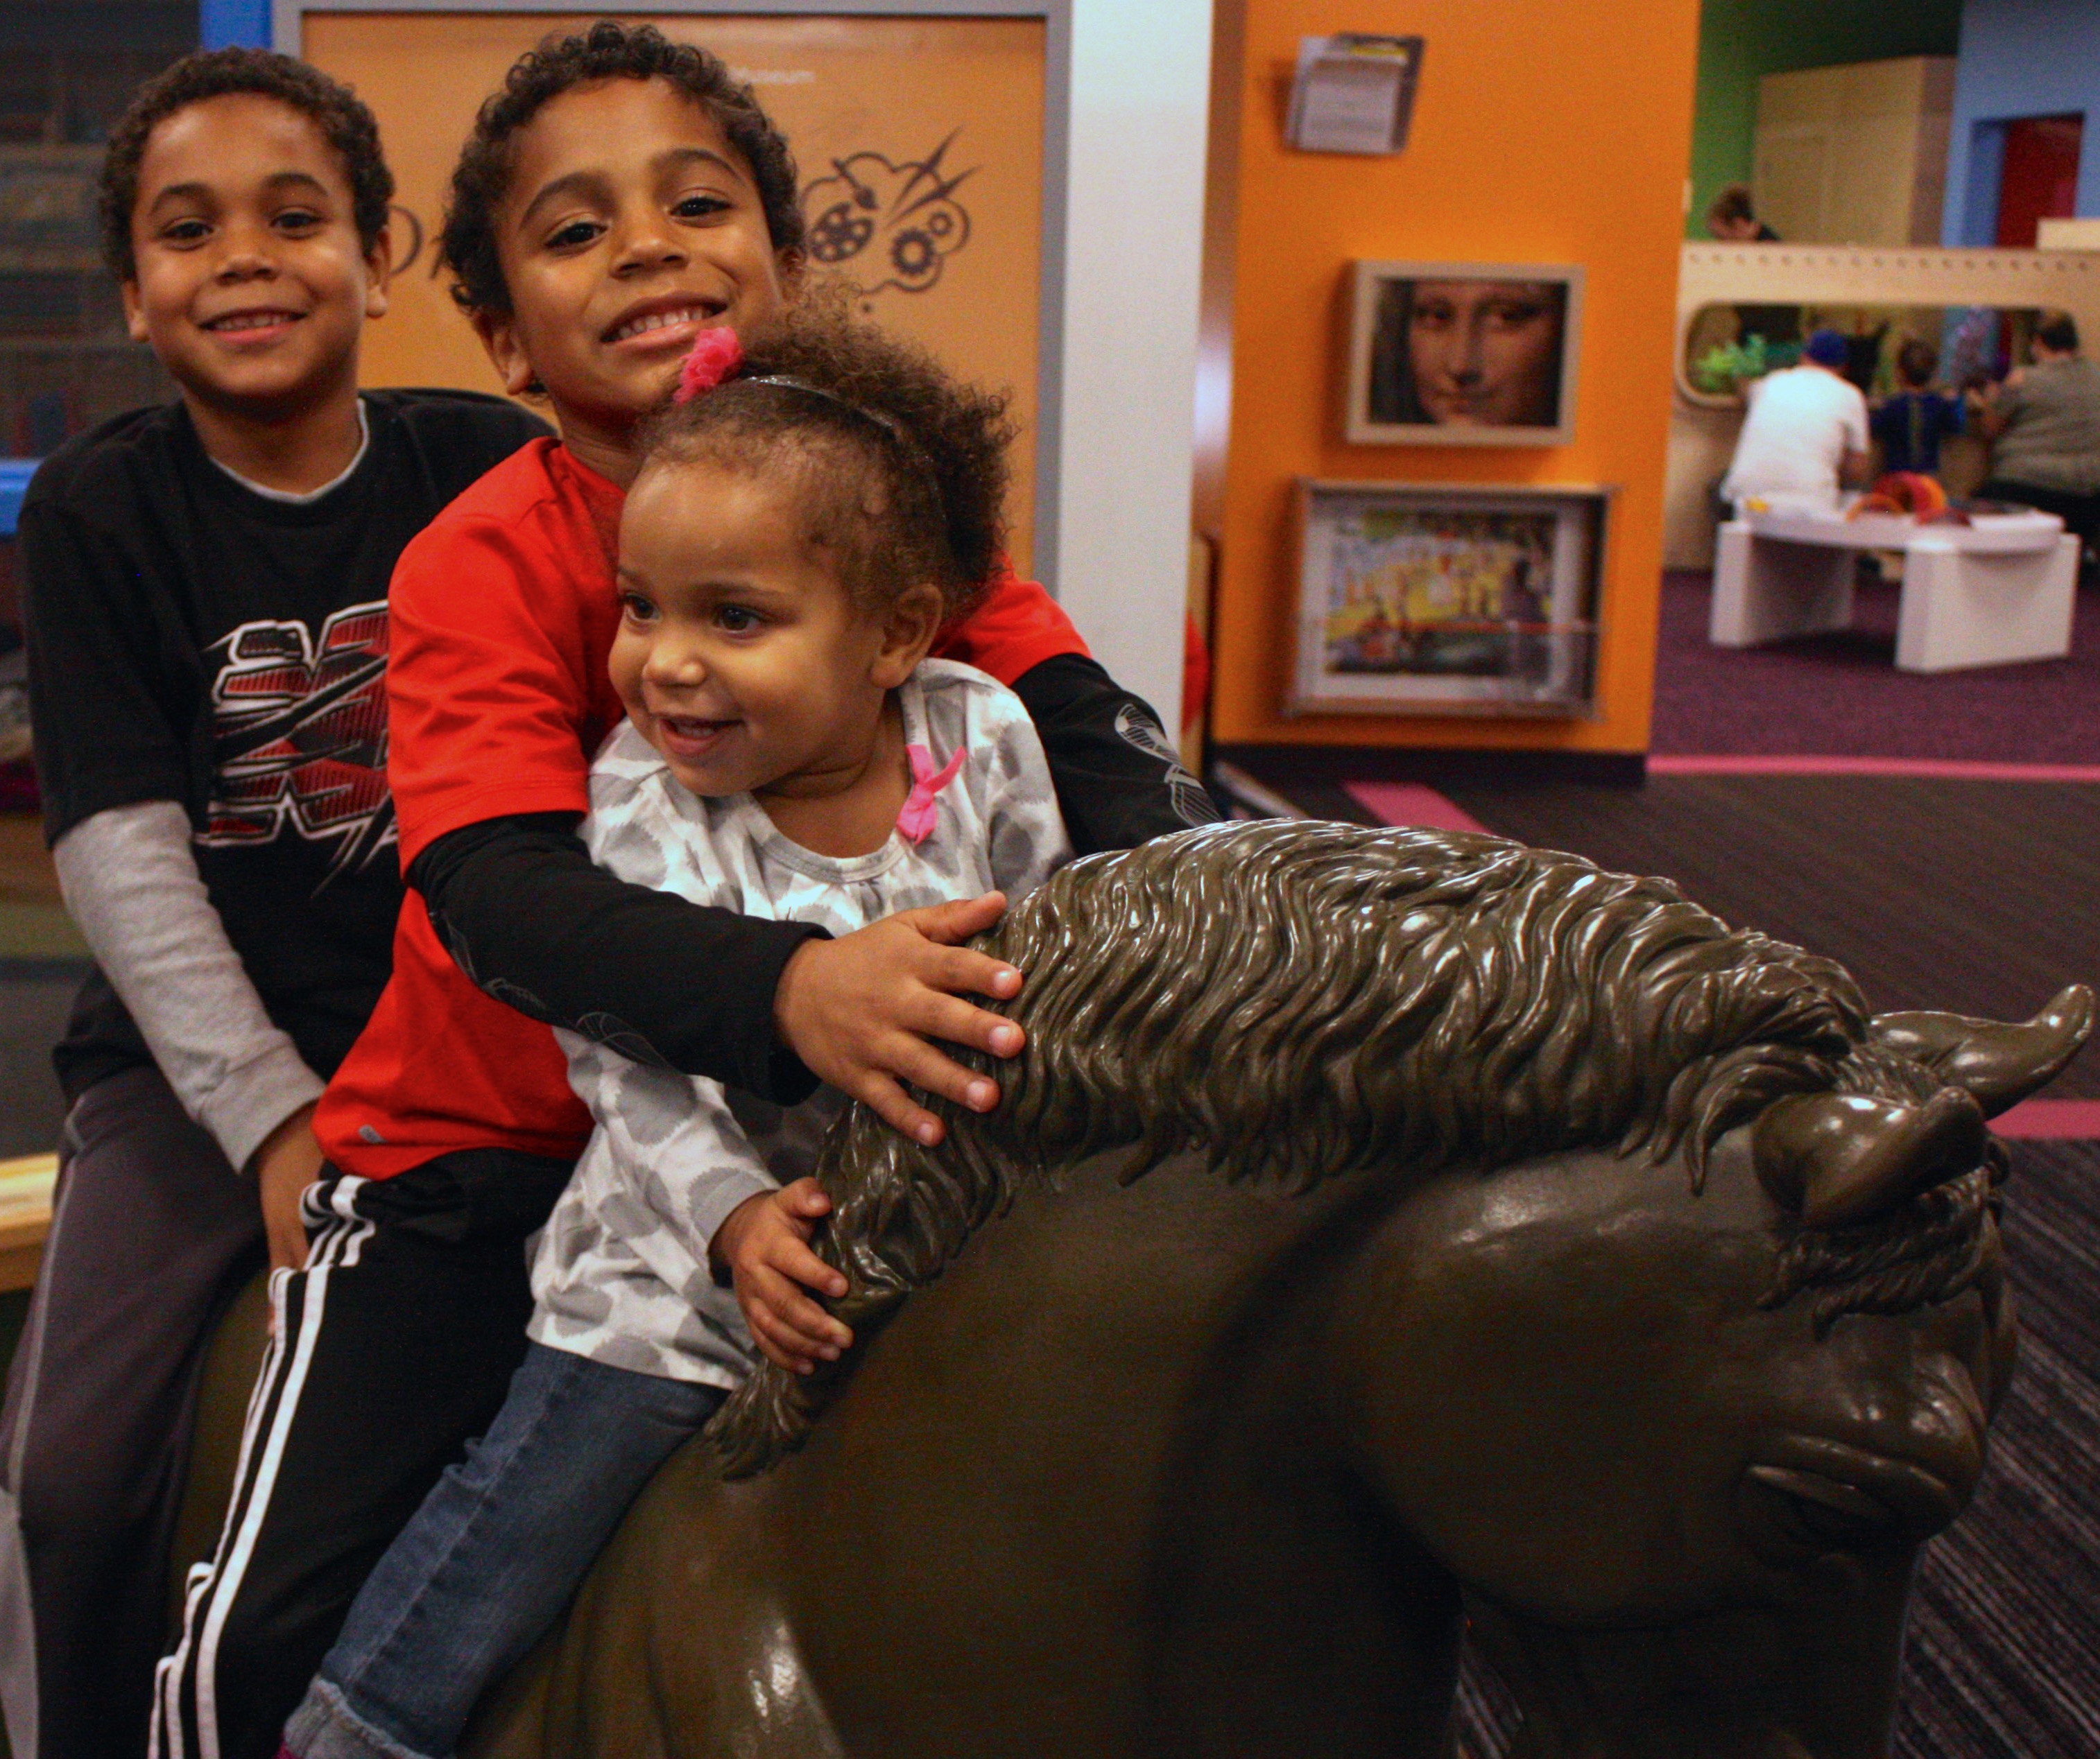 Dream with Da Vinci at the DuPage Children's Museum